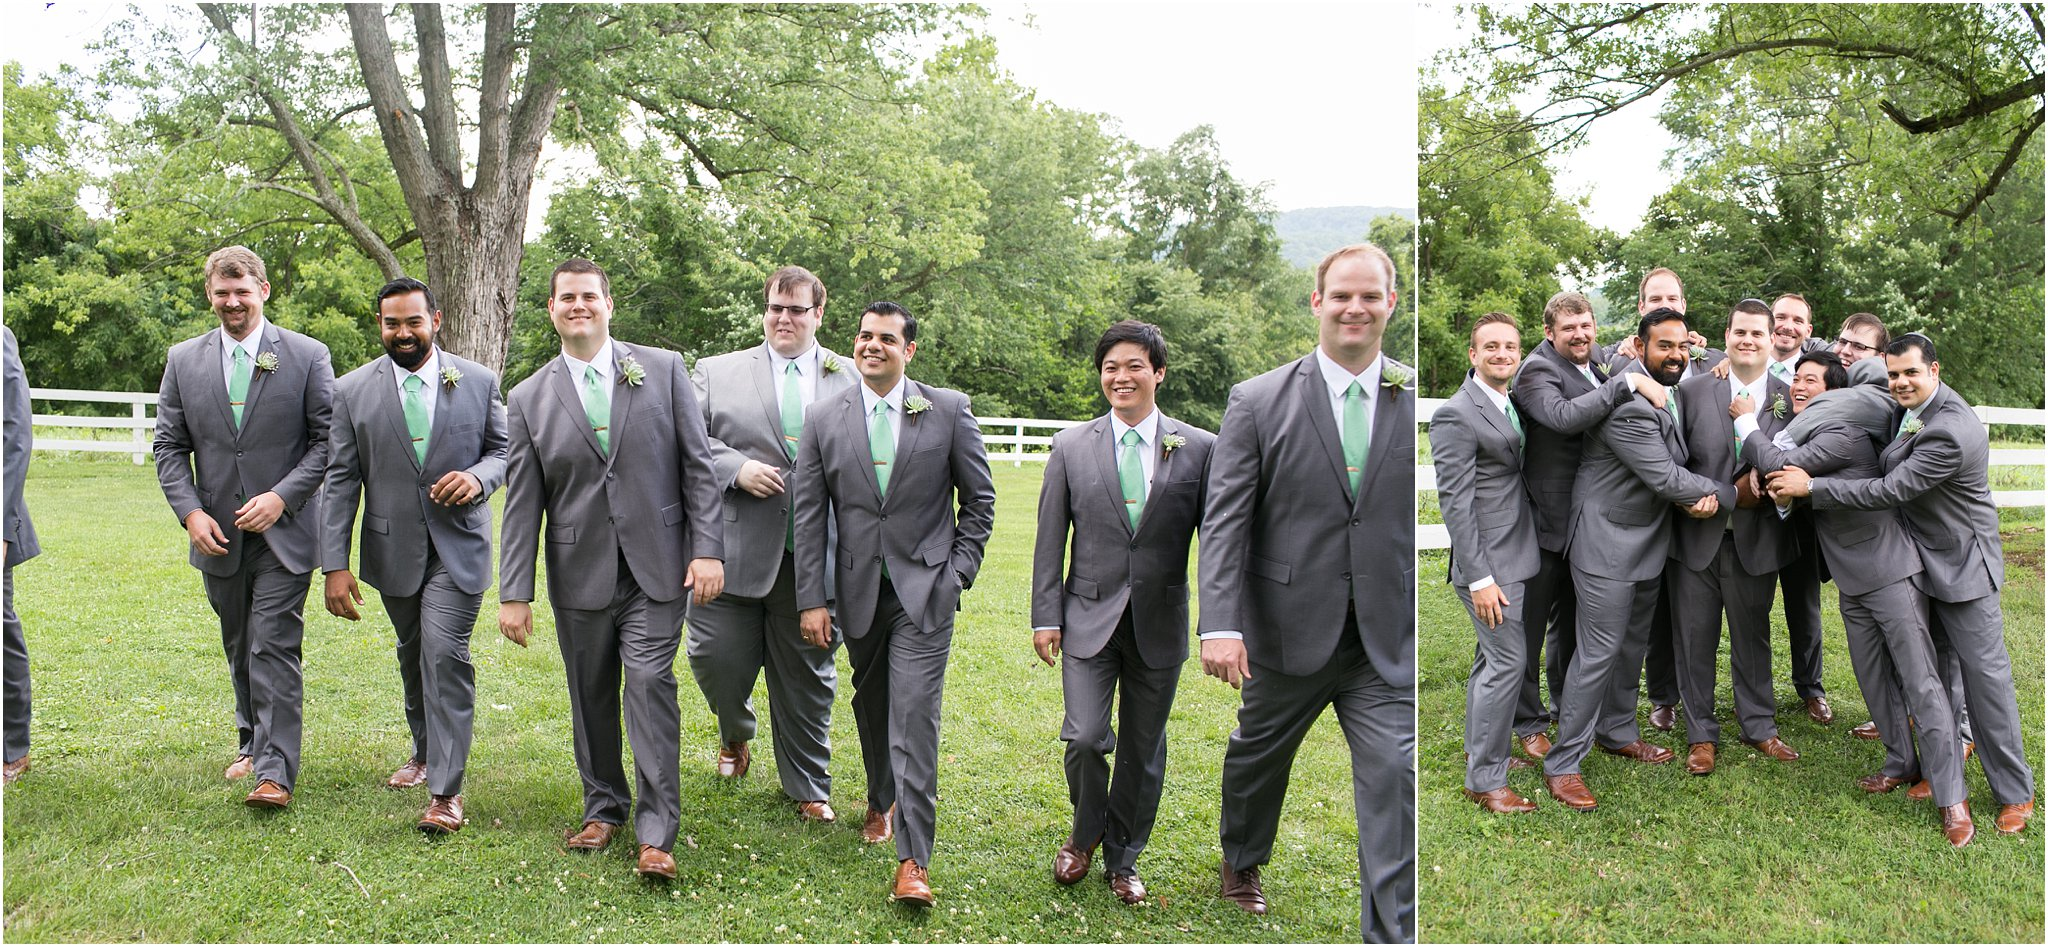 jessica_ryan_photography_virginia__middleburg_briar_patch_bed_and_breakfast_mountainside_wedding_Virginia_wedding_photographer_stella_york_wedding_dress_wedding_2560